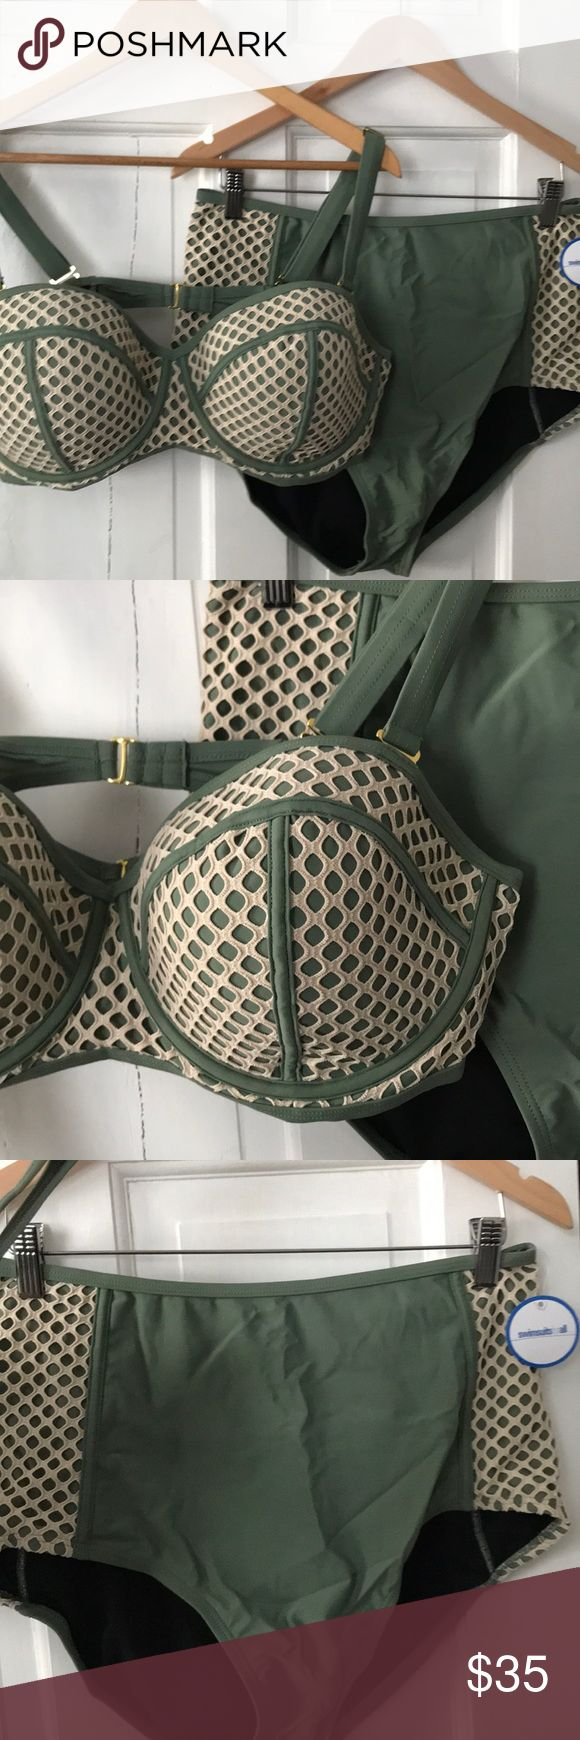 NWT Army Green Sexy Mesh High Waist Bikini 20 22 Brand new with tags  Army green with a cream mesh detail.   Comes in original shipping bags  Size 22 top but looks to run a size 20 (reviews said size up for fit) bottoms size 20 and look to run true to size. I haven't tried it on  Gorgeous suit from swimsuits for all. Gorgeous but not my size. Great quality   I purchased 8-10 suits to try before vacation.. some I didn't even try on before leaving due to how they looked size wise.. and I…